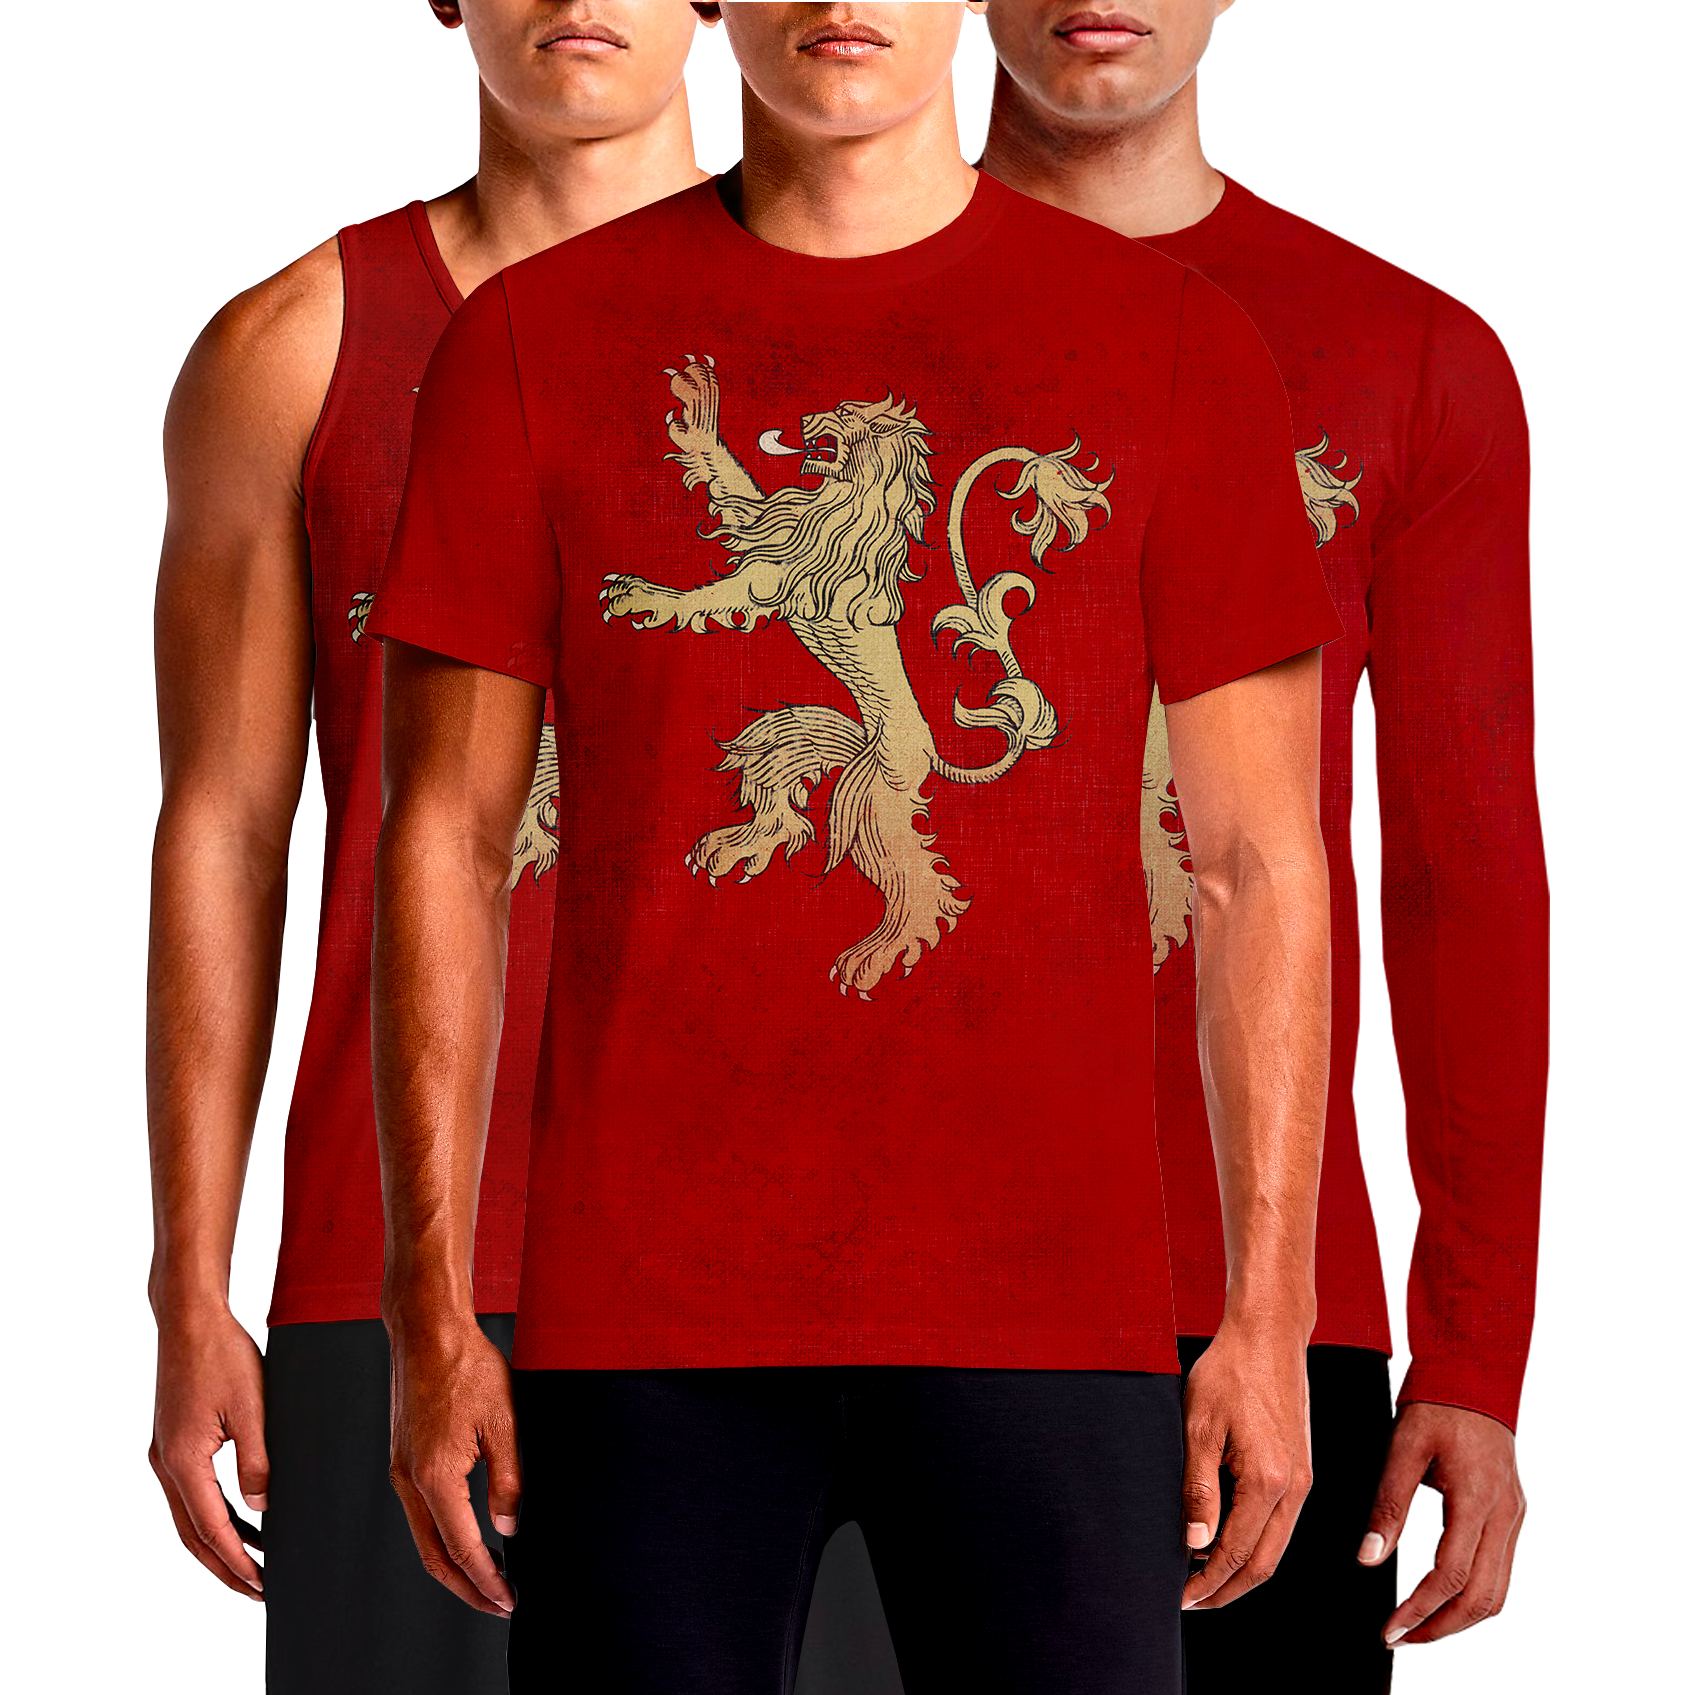 Game Of Throne House Lannister Lion Tyrion Red T-Shirt, Tank Top, Full Sleeves